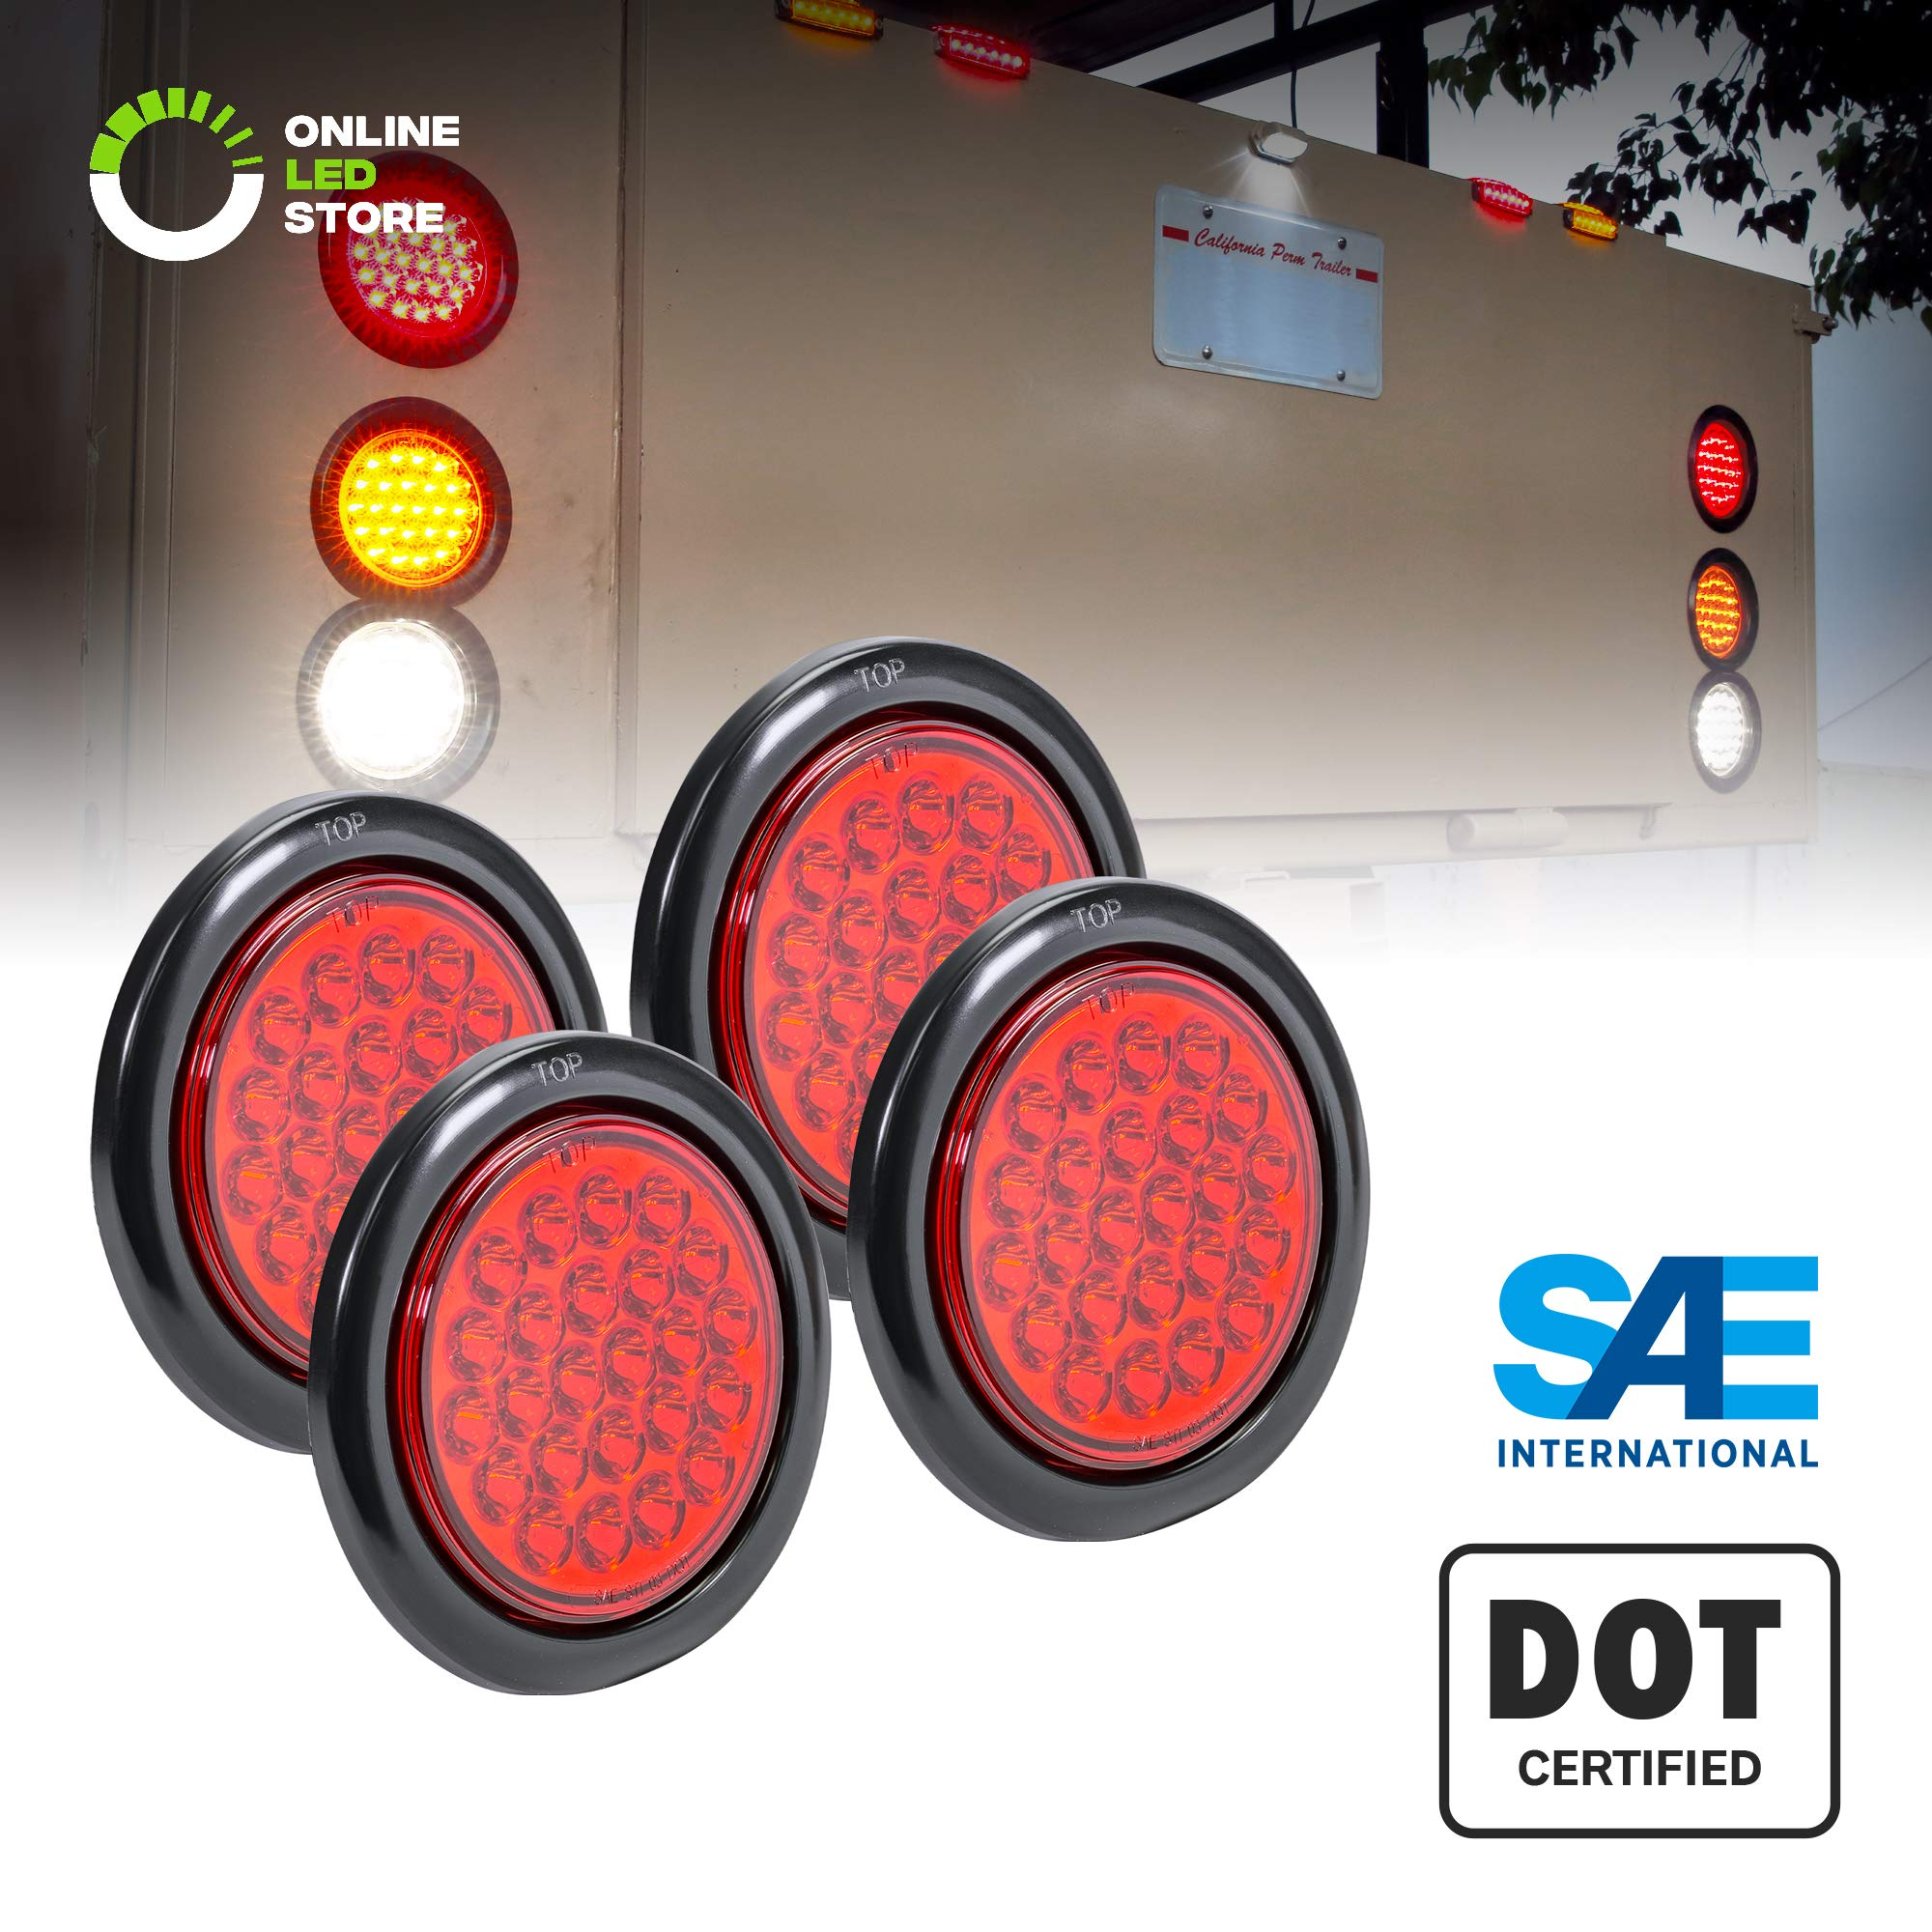 4pc 4'' Round Red 24 LED Trailer Tail Lights [DOT Certified] [Grommet & Plug Included] [IP67 Waterproof] Turn Stop Brake Trailer Lights for RV Jeep Truck by ONLINE LED STORE